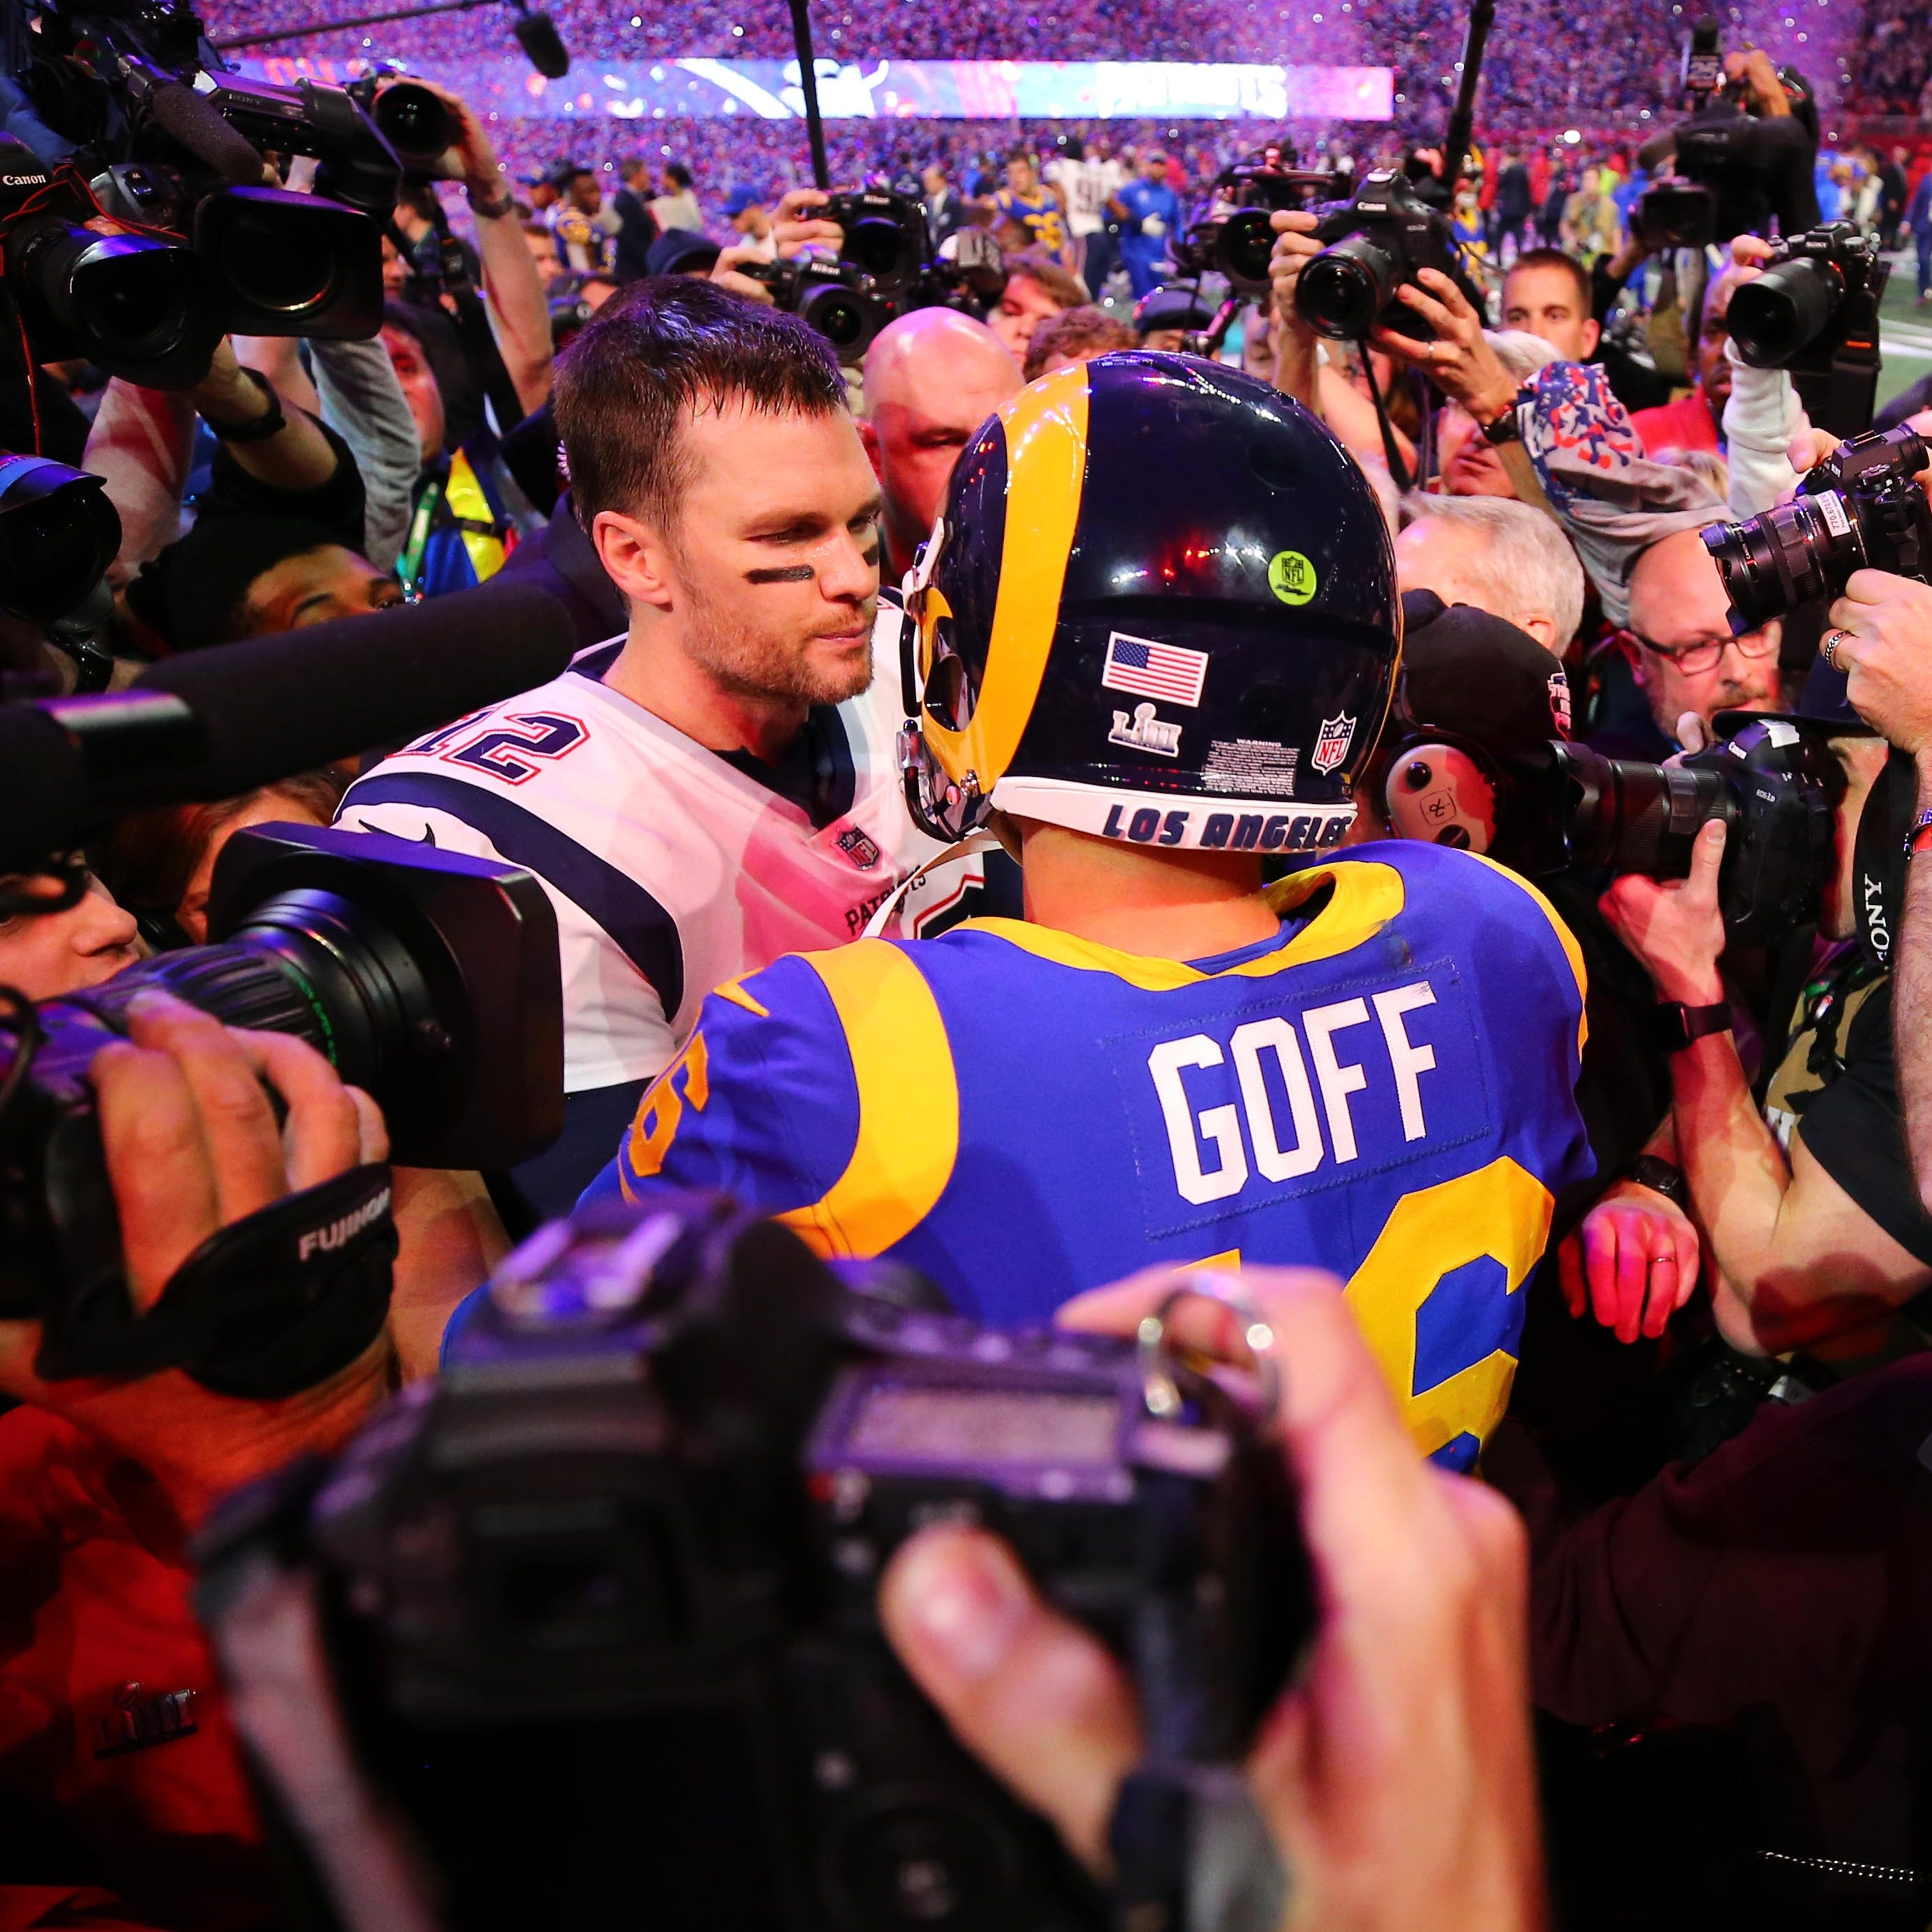 Tom Brady was the center of attention after the Patriots won the Super Bowl.